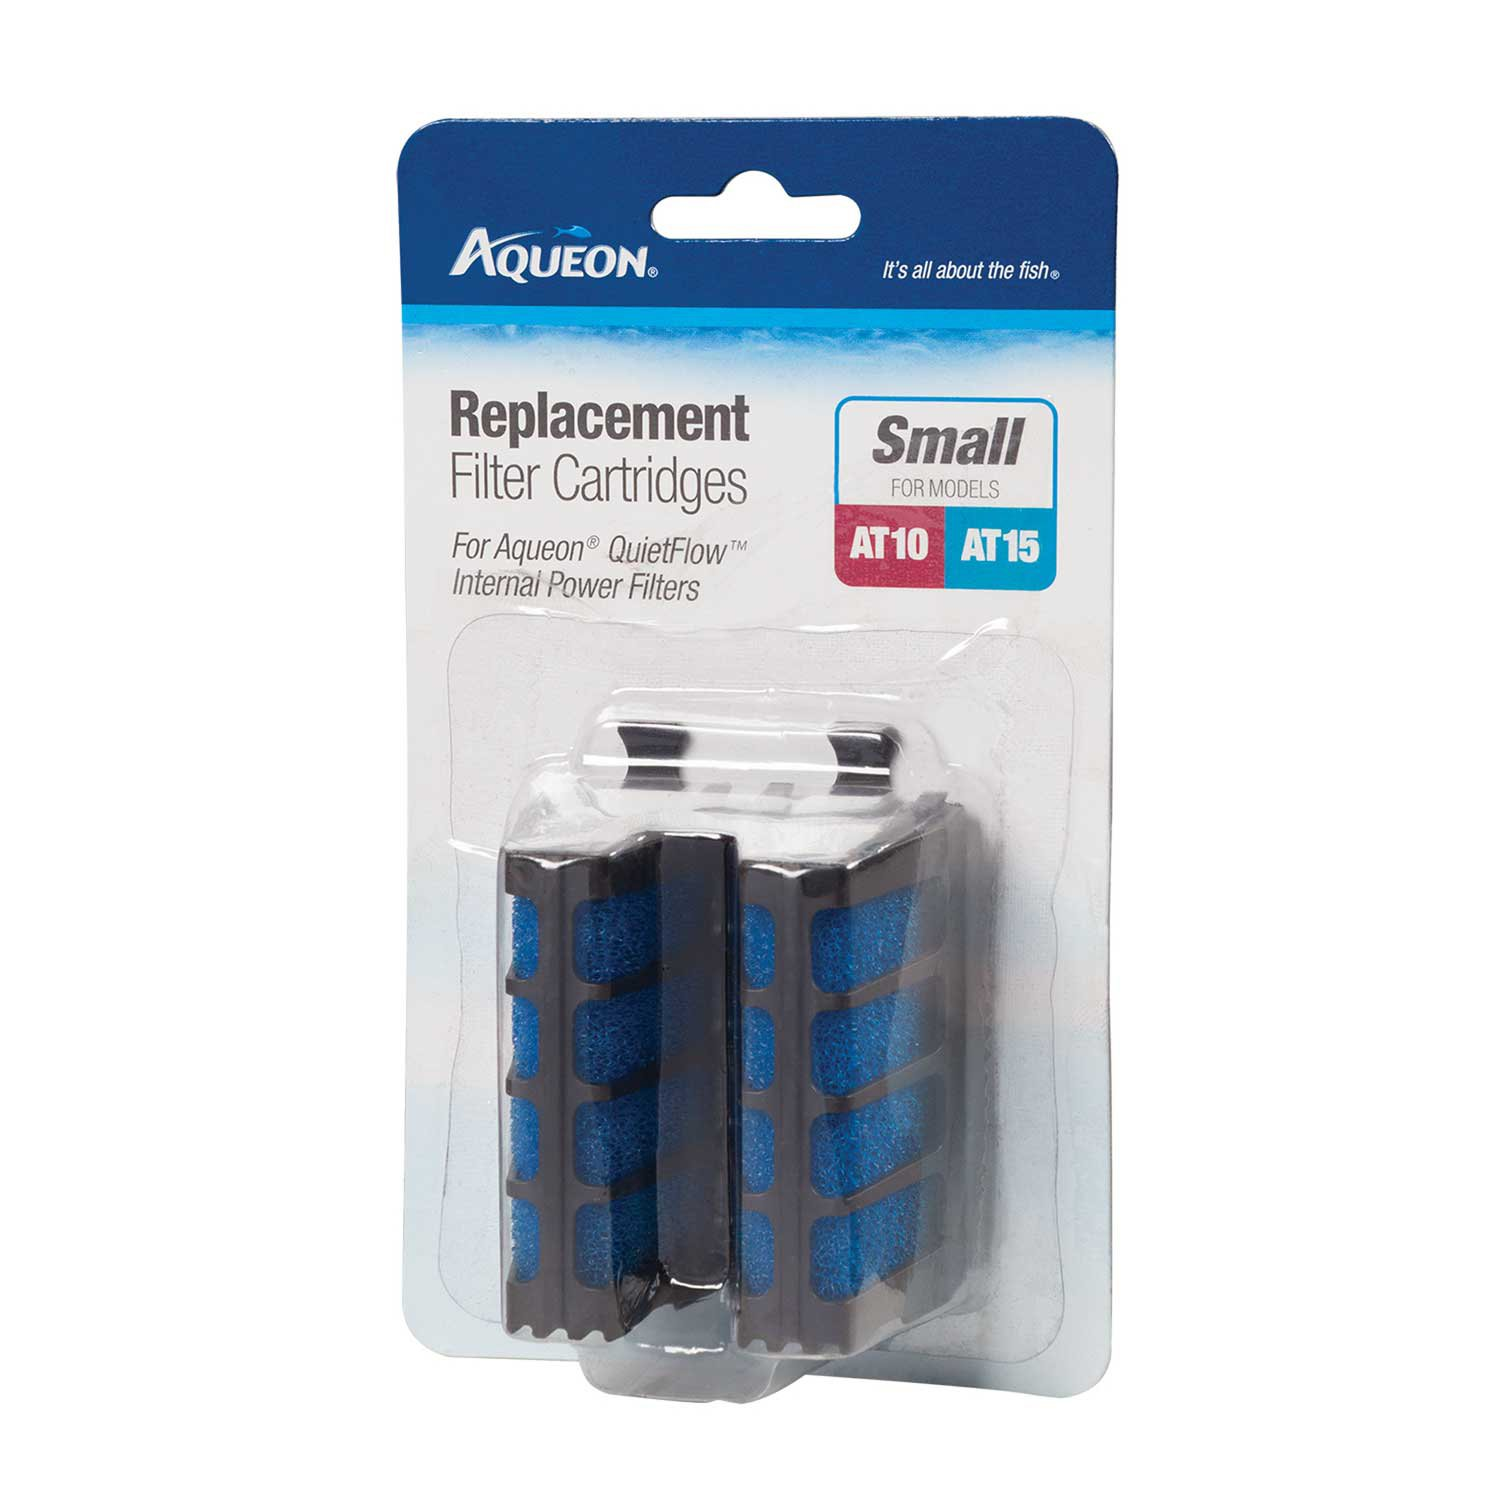 Aqueon quietflow internal replacement filter cartridges for Petco fish tank filters